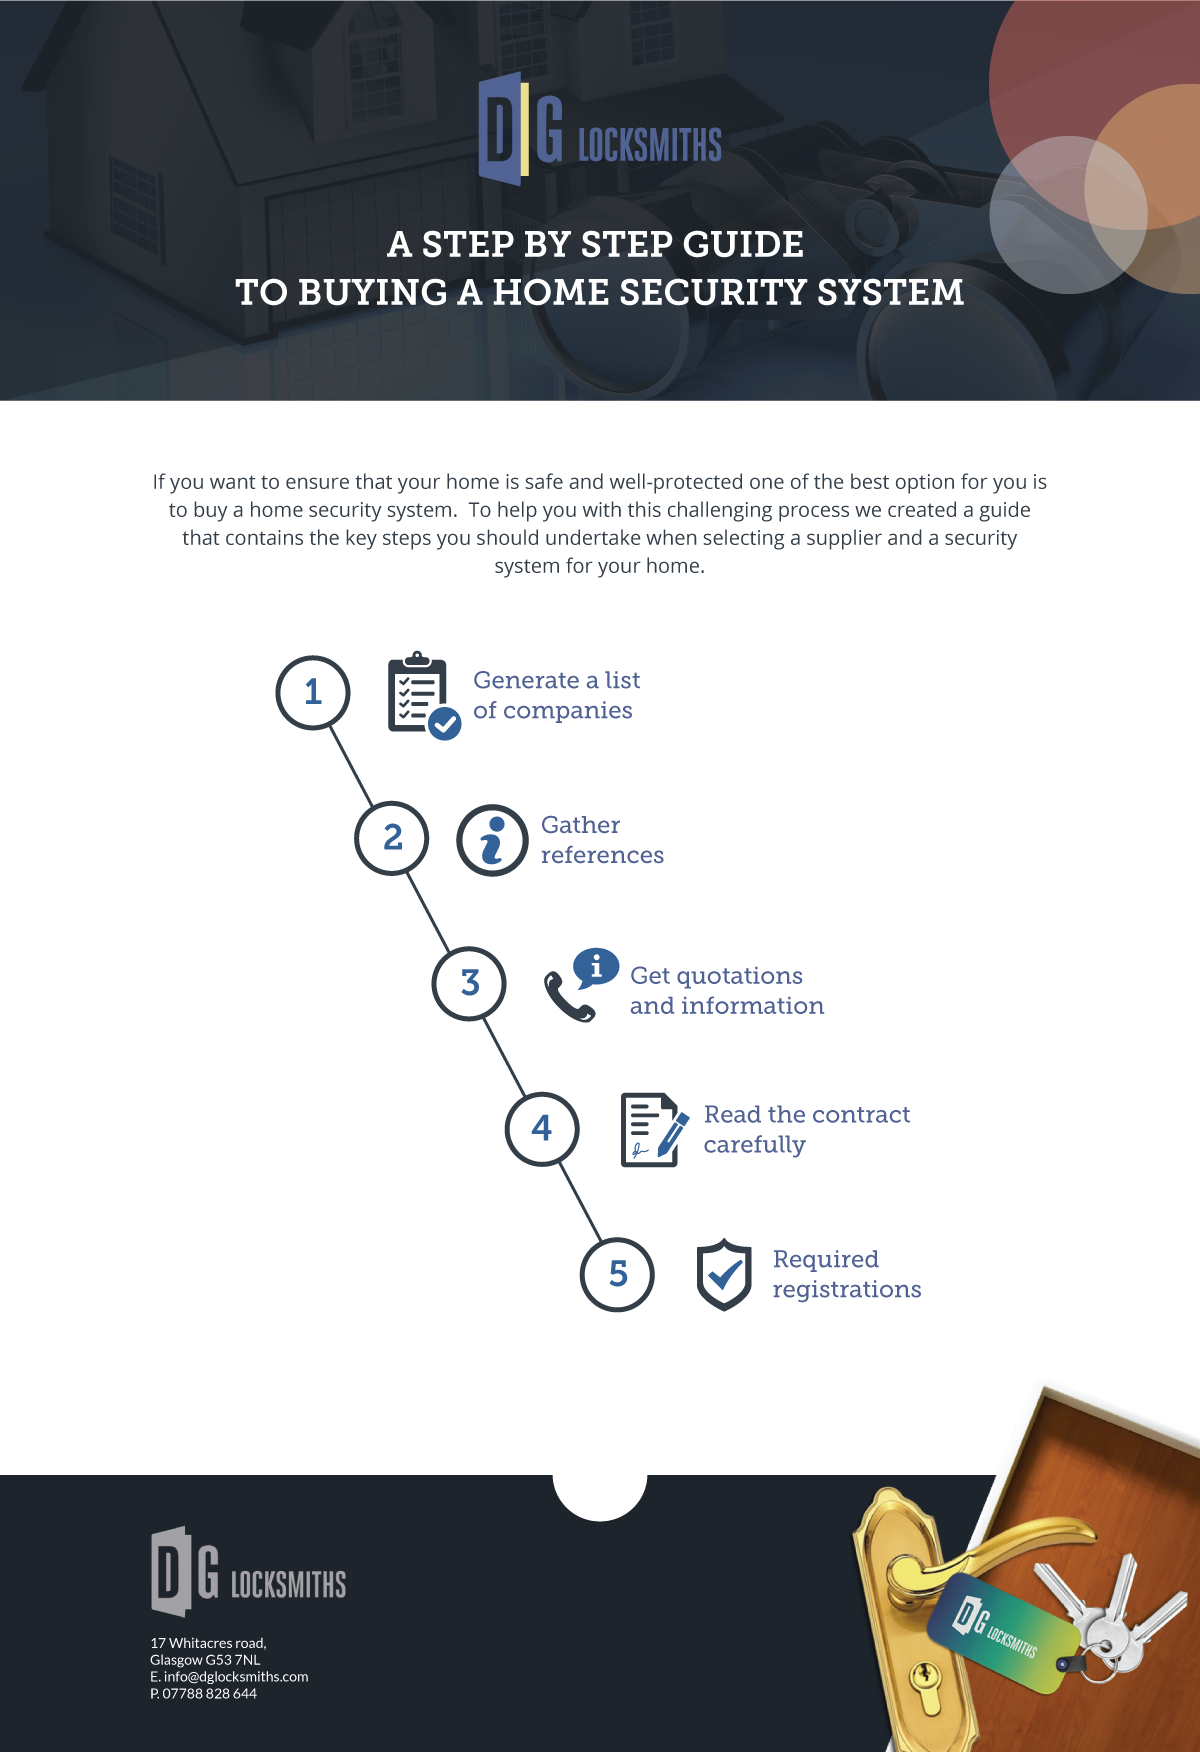 A-Step-by-Step-Guide-to-Buying-a-Home-Security-System